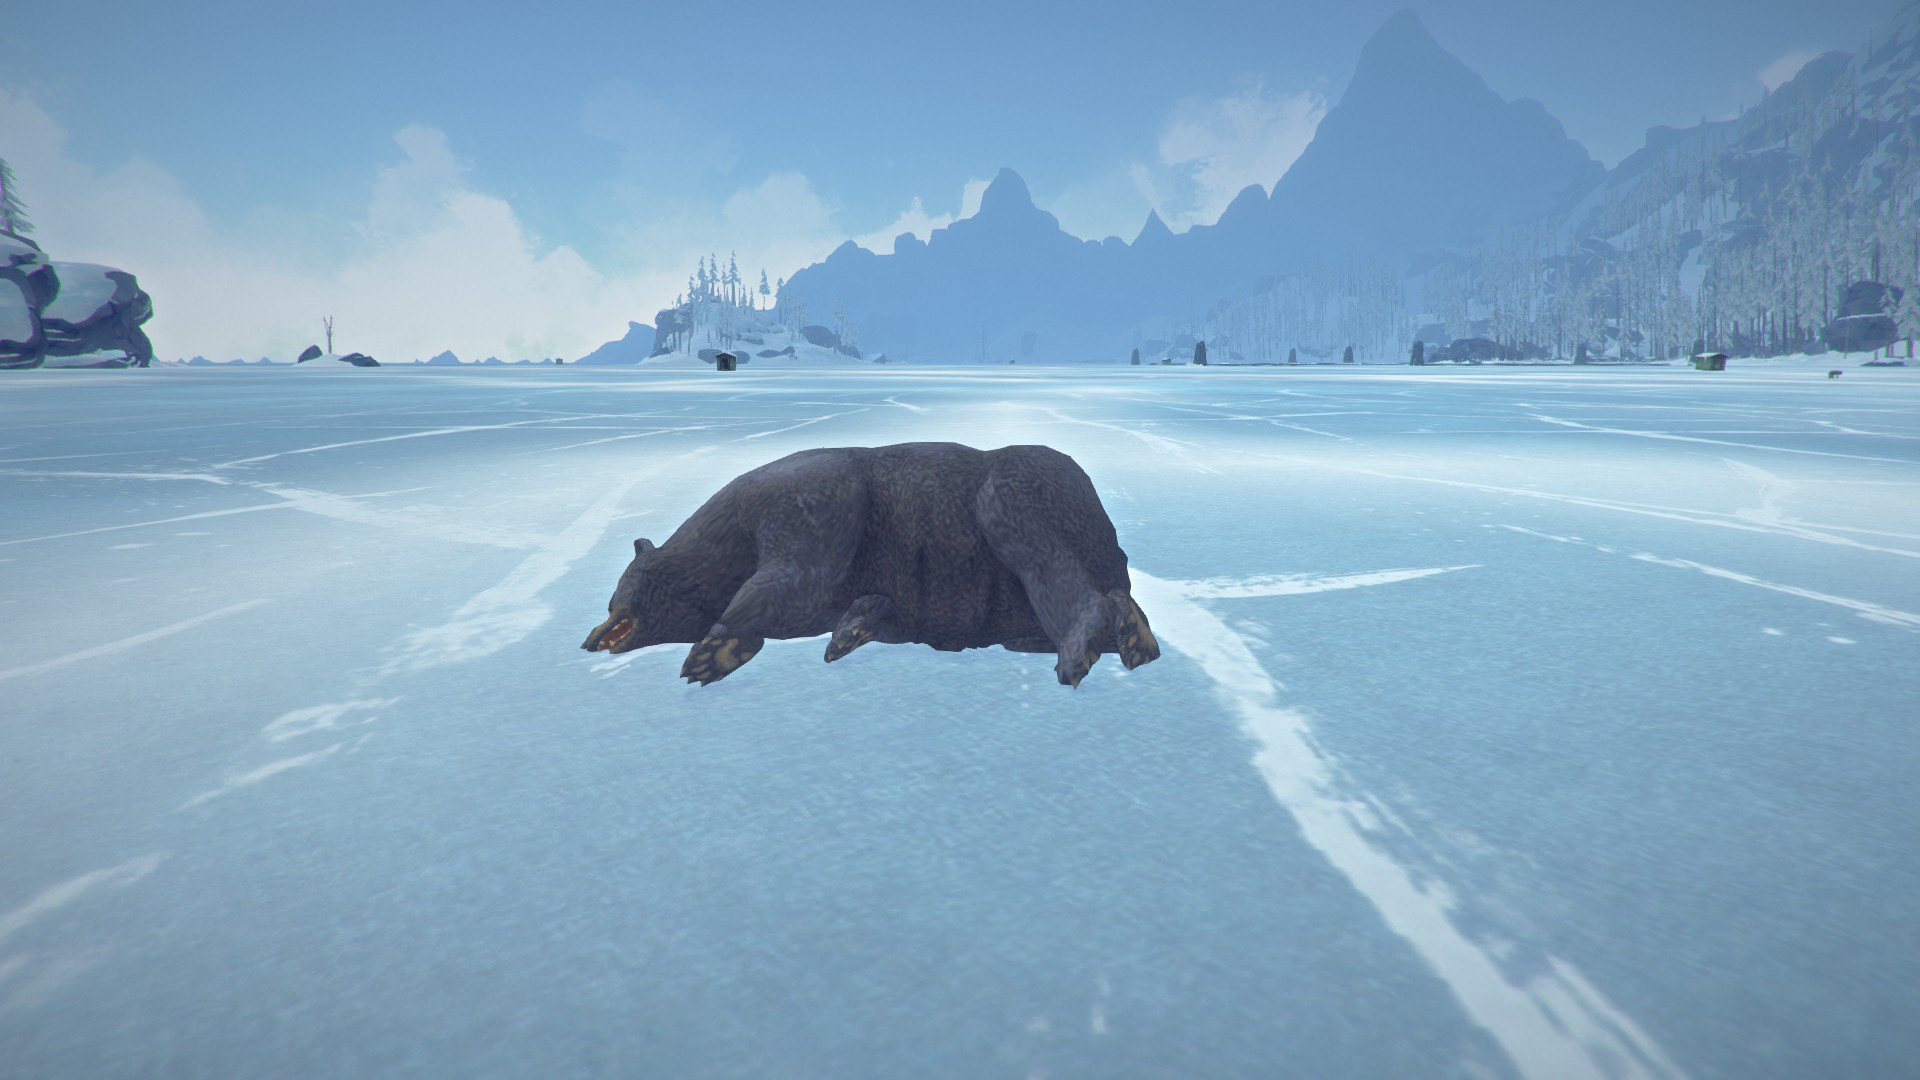 If you've never played The Long Dark, watch out for bears.